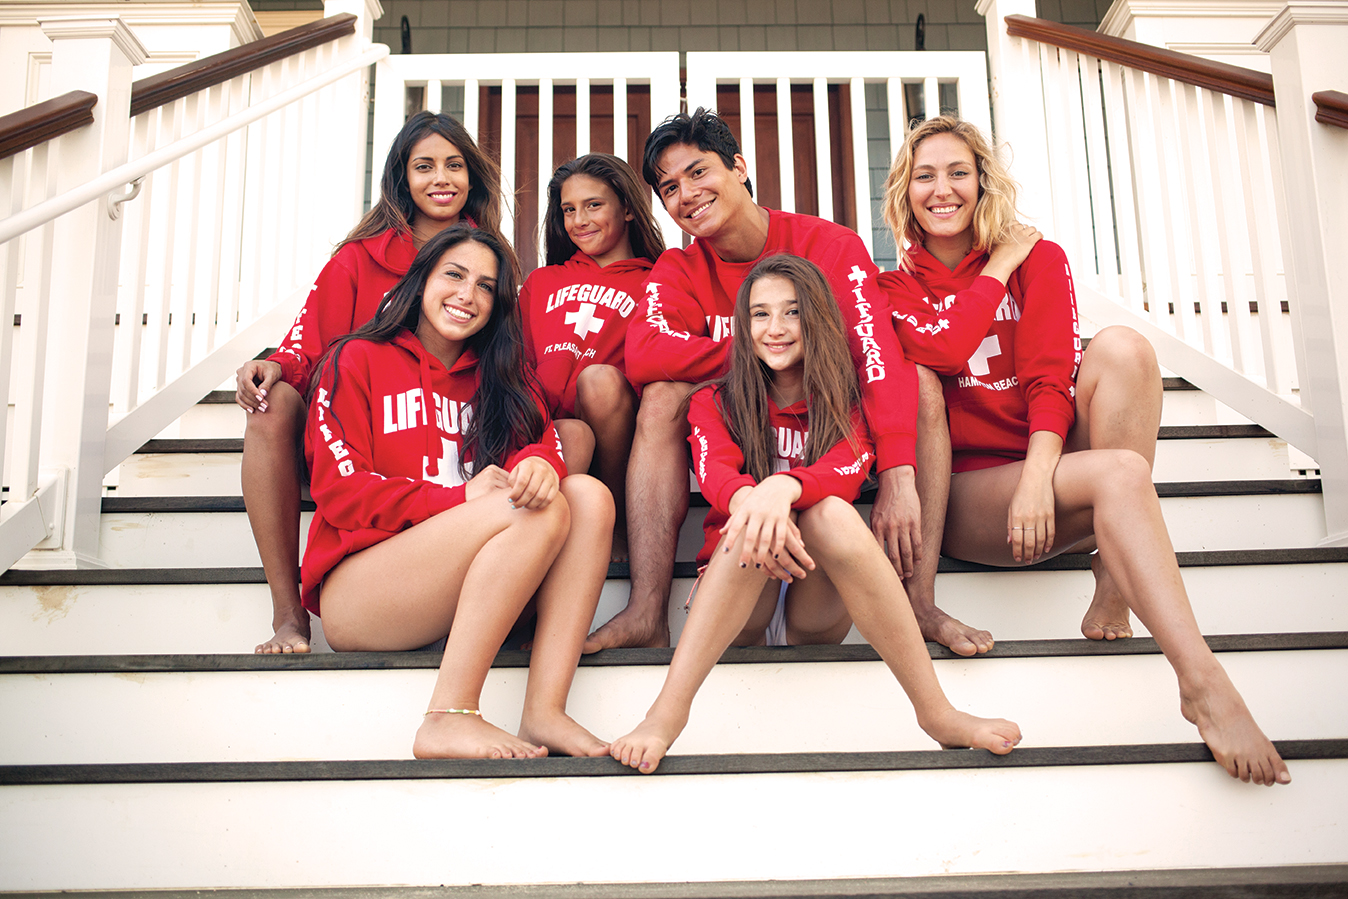 About Us - Who We Are - Beach Lifeguard